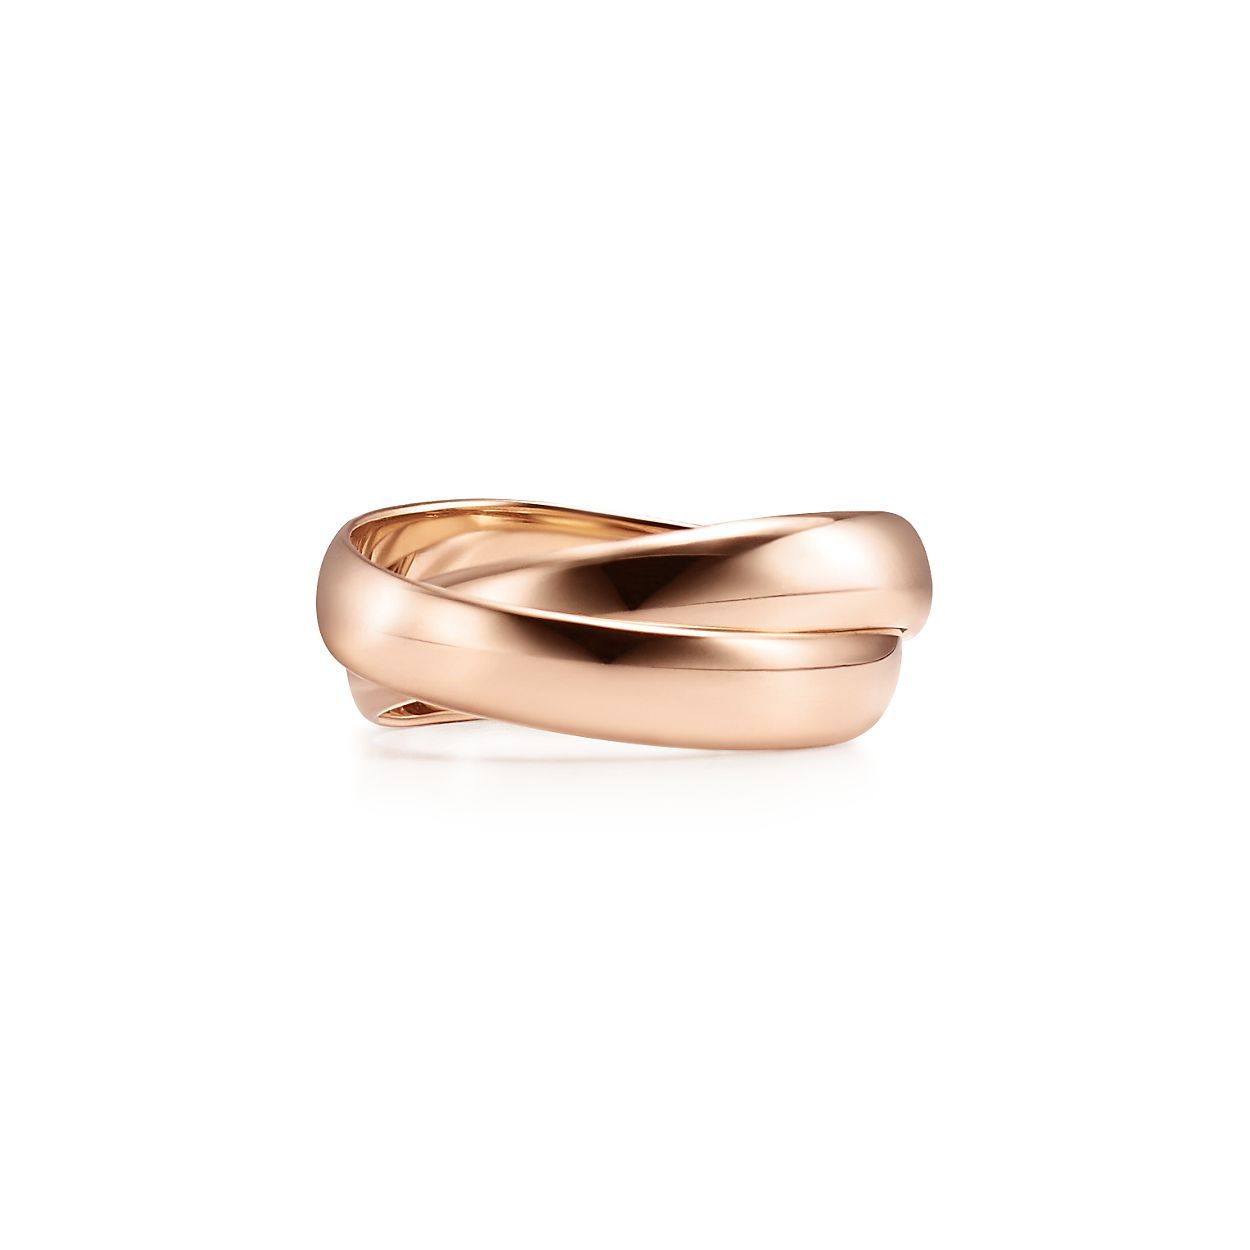 Palomas Melody two-band ring in 18k rose gold - Size 4 Tiffany & Co. pZrPh